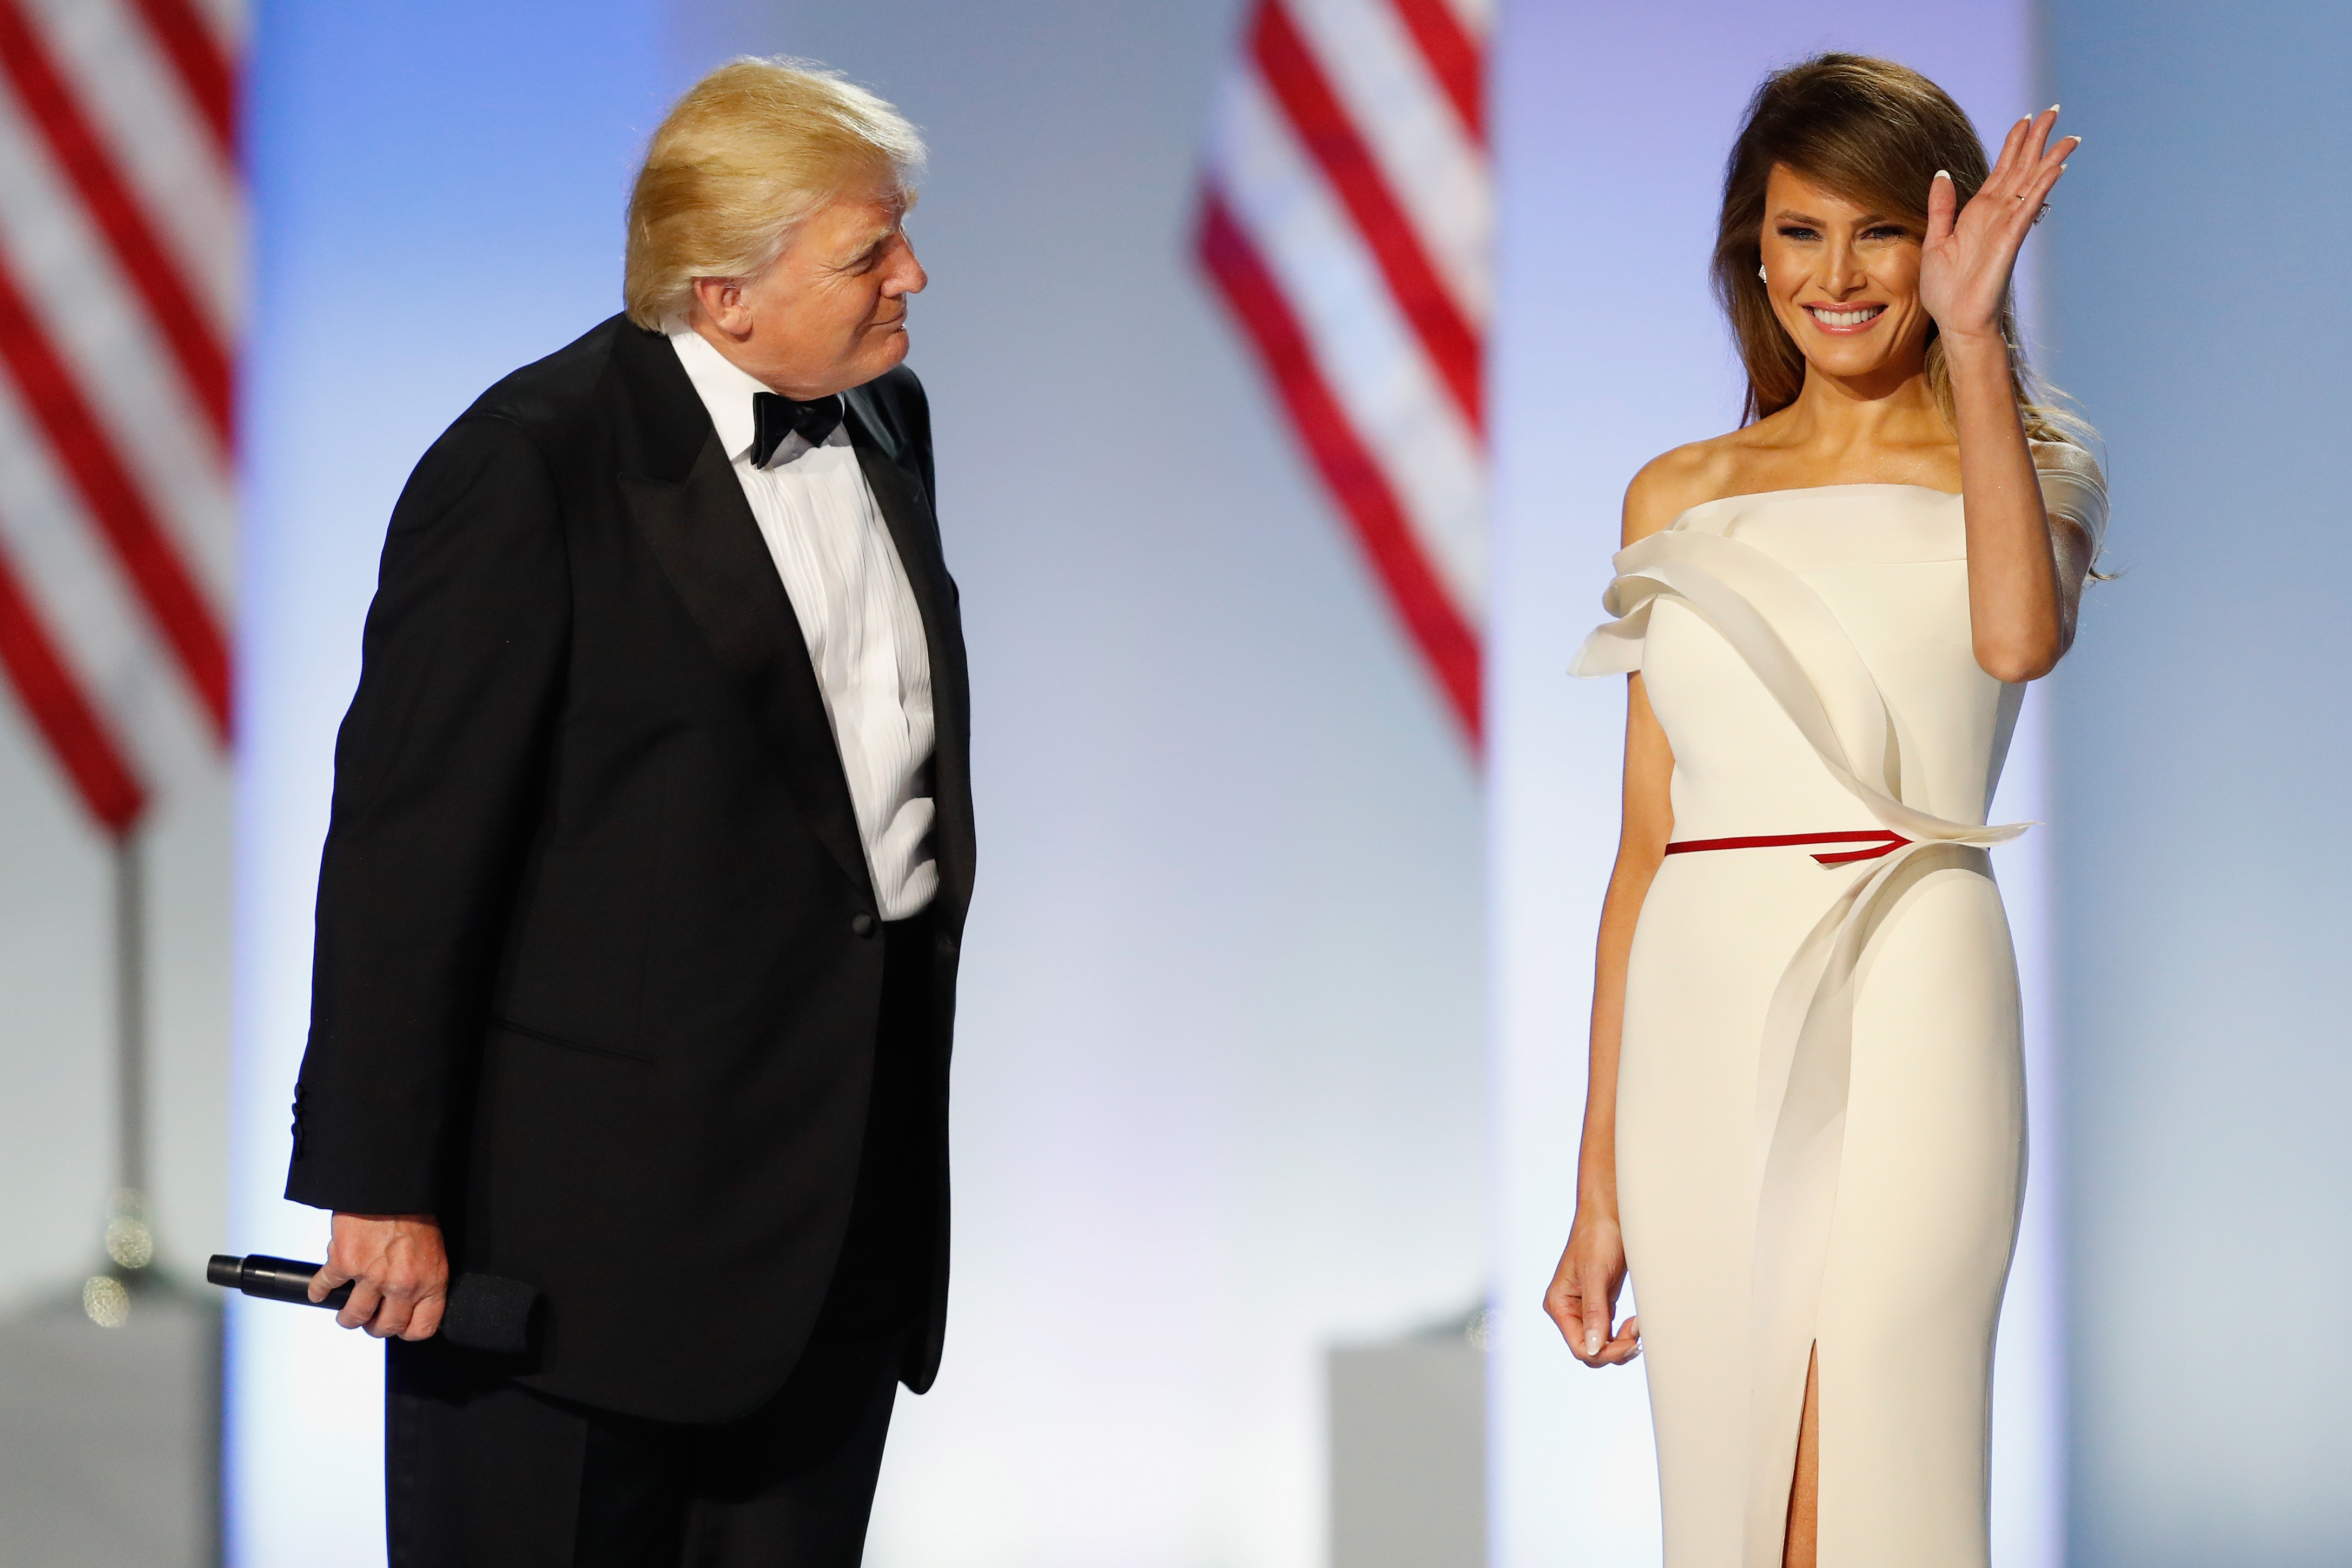 Melania Trump helped design her inaugural ball gown. That's not normal